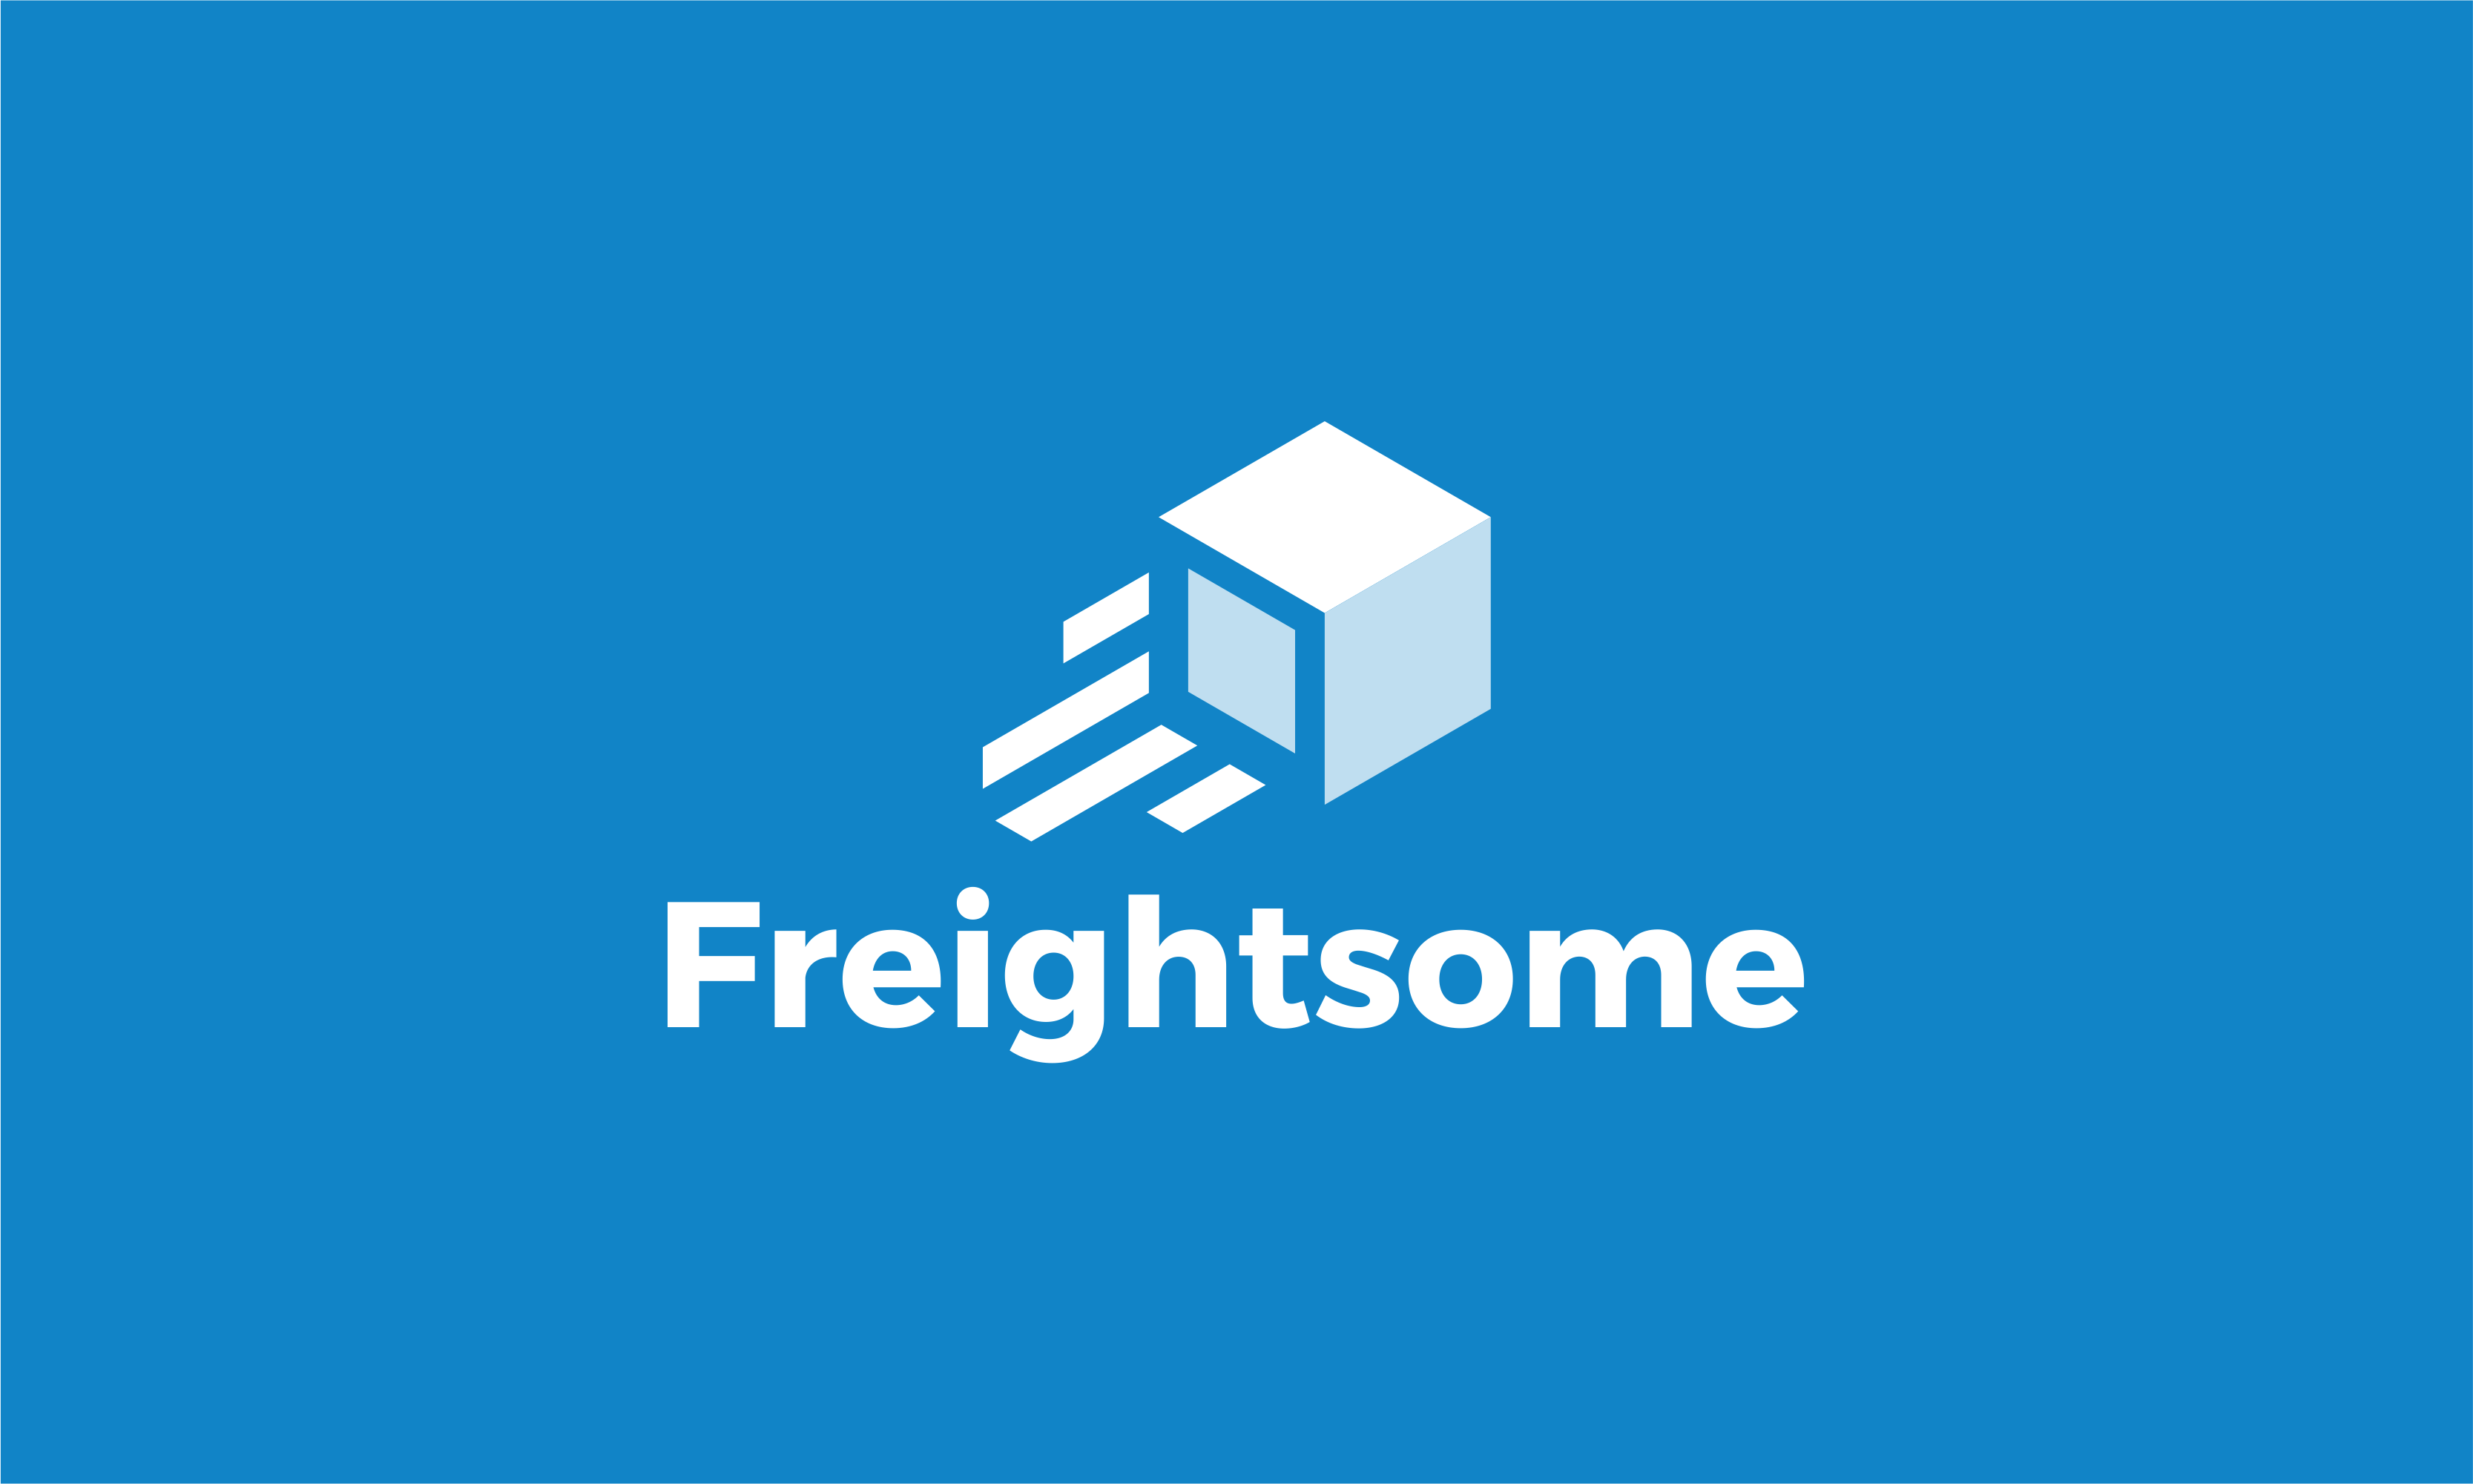 Freightsome